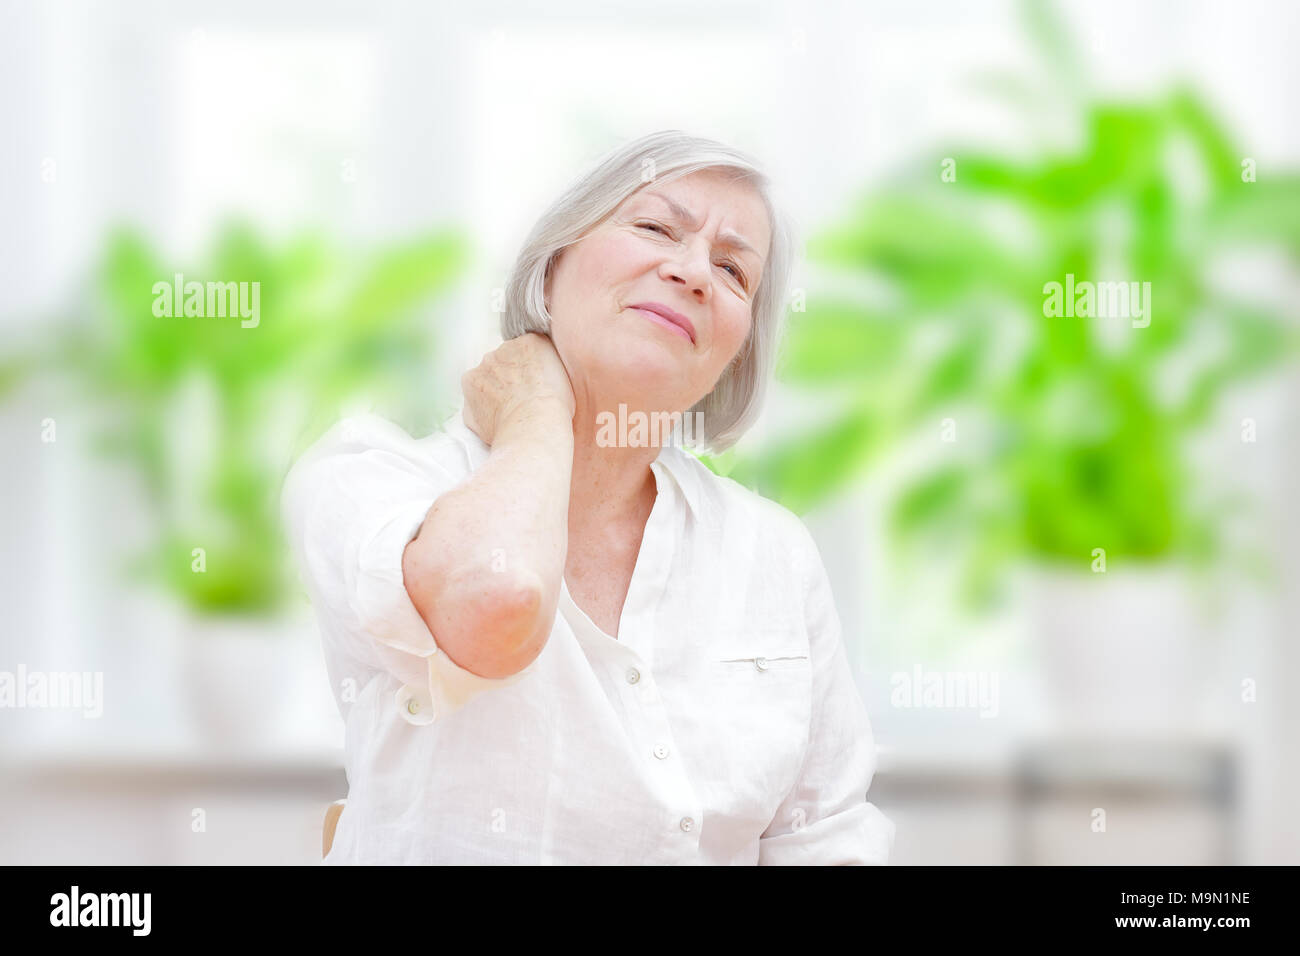 Senior woman with chronic pain syndrome fibromyalgia suffering from acute neckaches - Stock Image